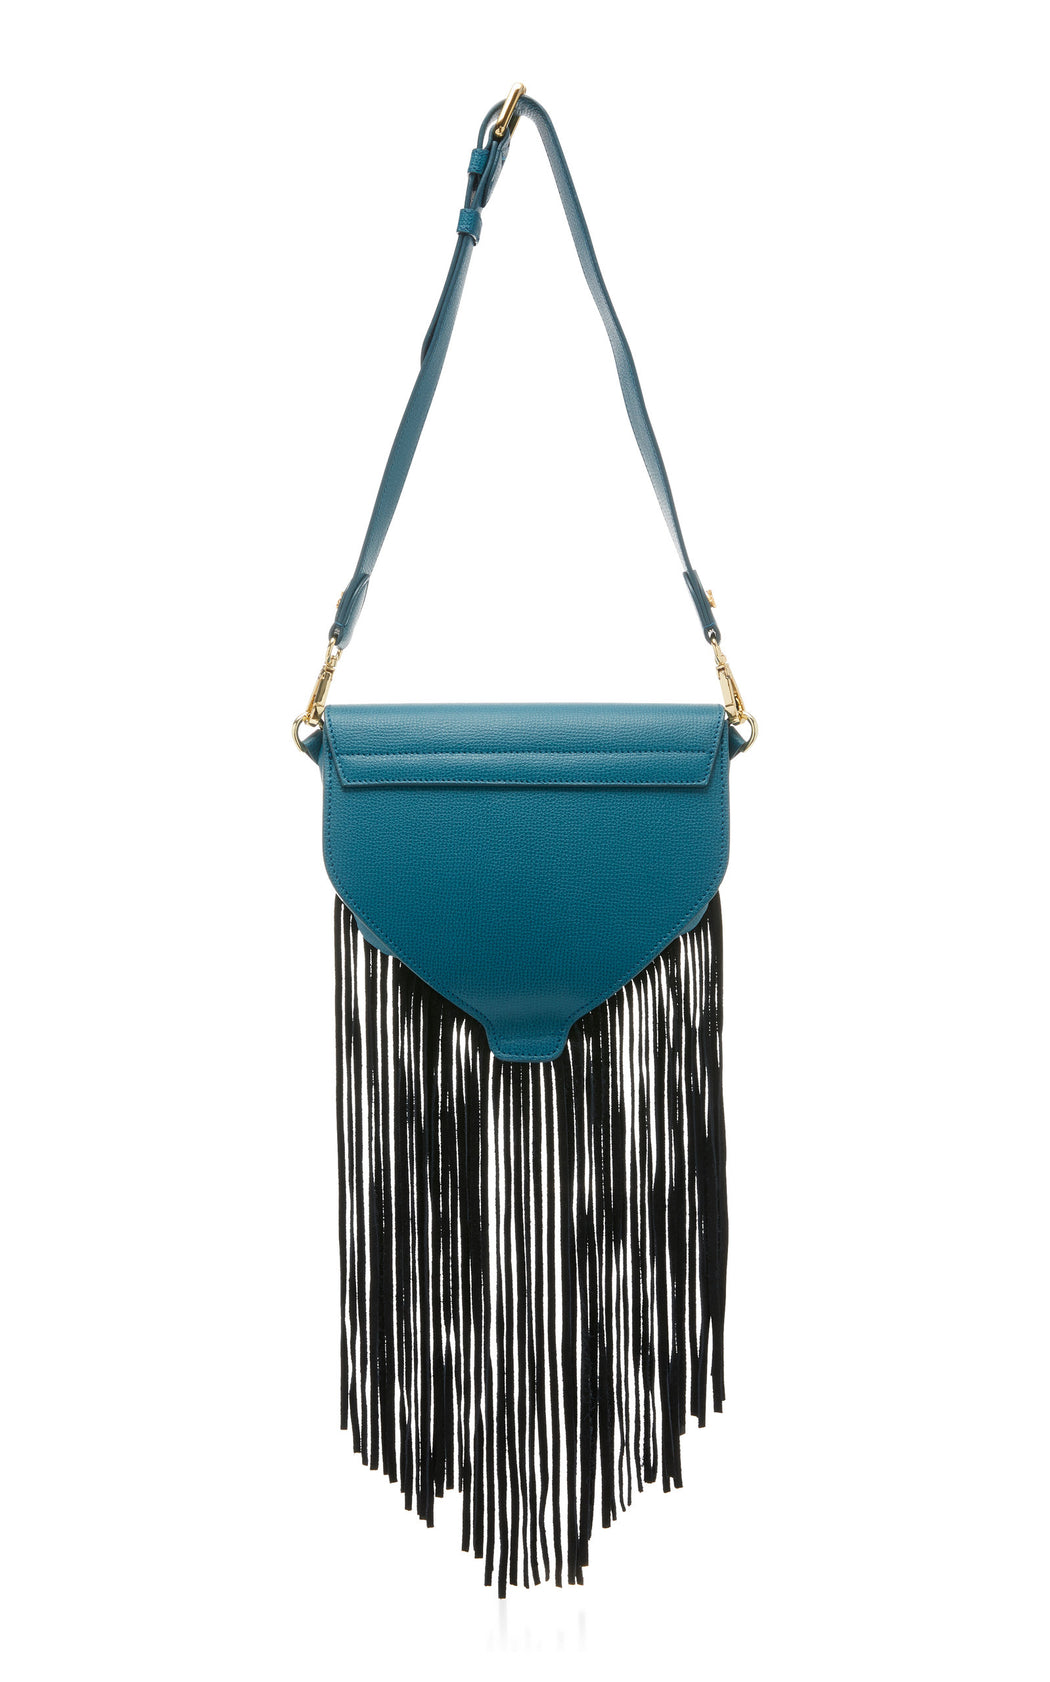 "The ultimate ""IT"" bag for convenience. The Hippie in teal saffiano leather and black suede fringe can be worn as a luxury belt bag, over the shoulder, or as a luxury leather crossbody. This fun little bag works for every situation--from running errands to music festivals. Roomy interior with fun fringe, contrast edges and nickel turnlock details."